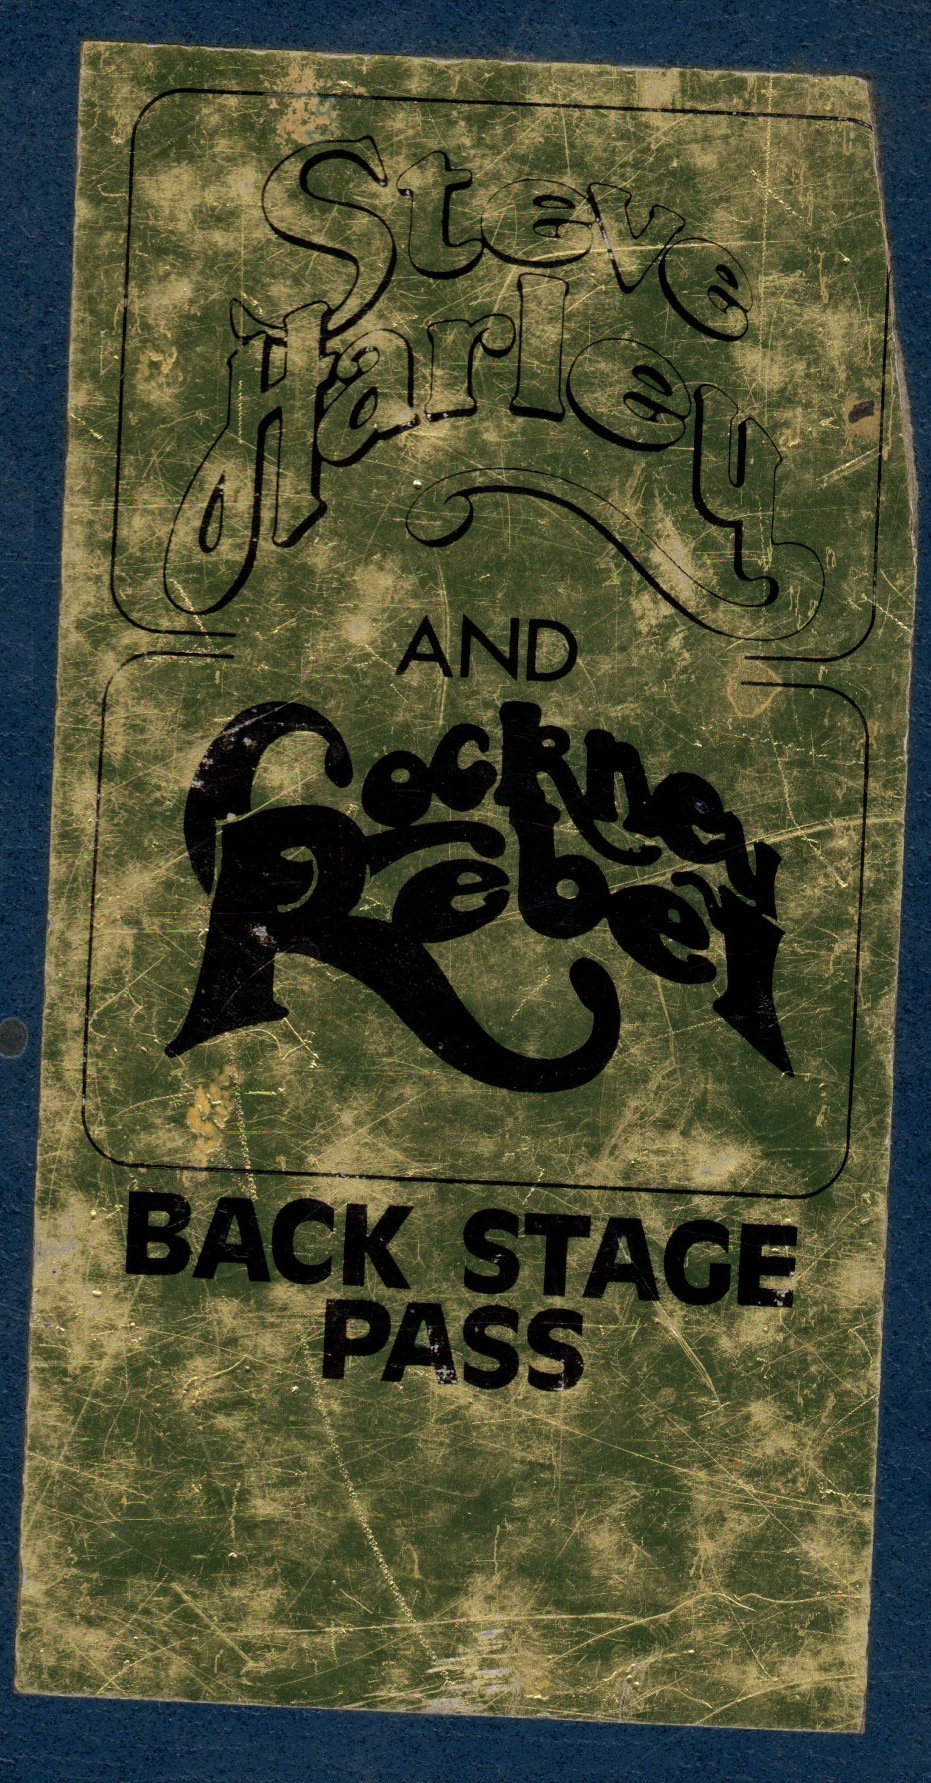 tour backstage pass 75